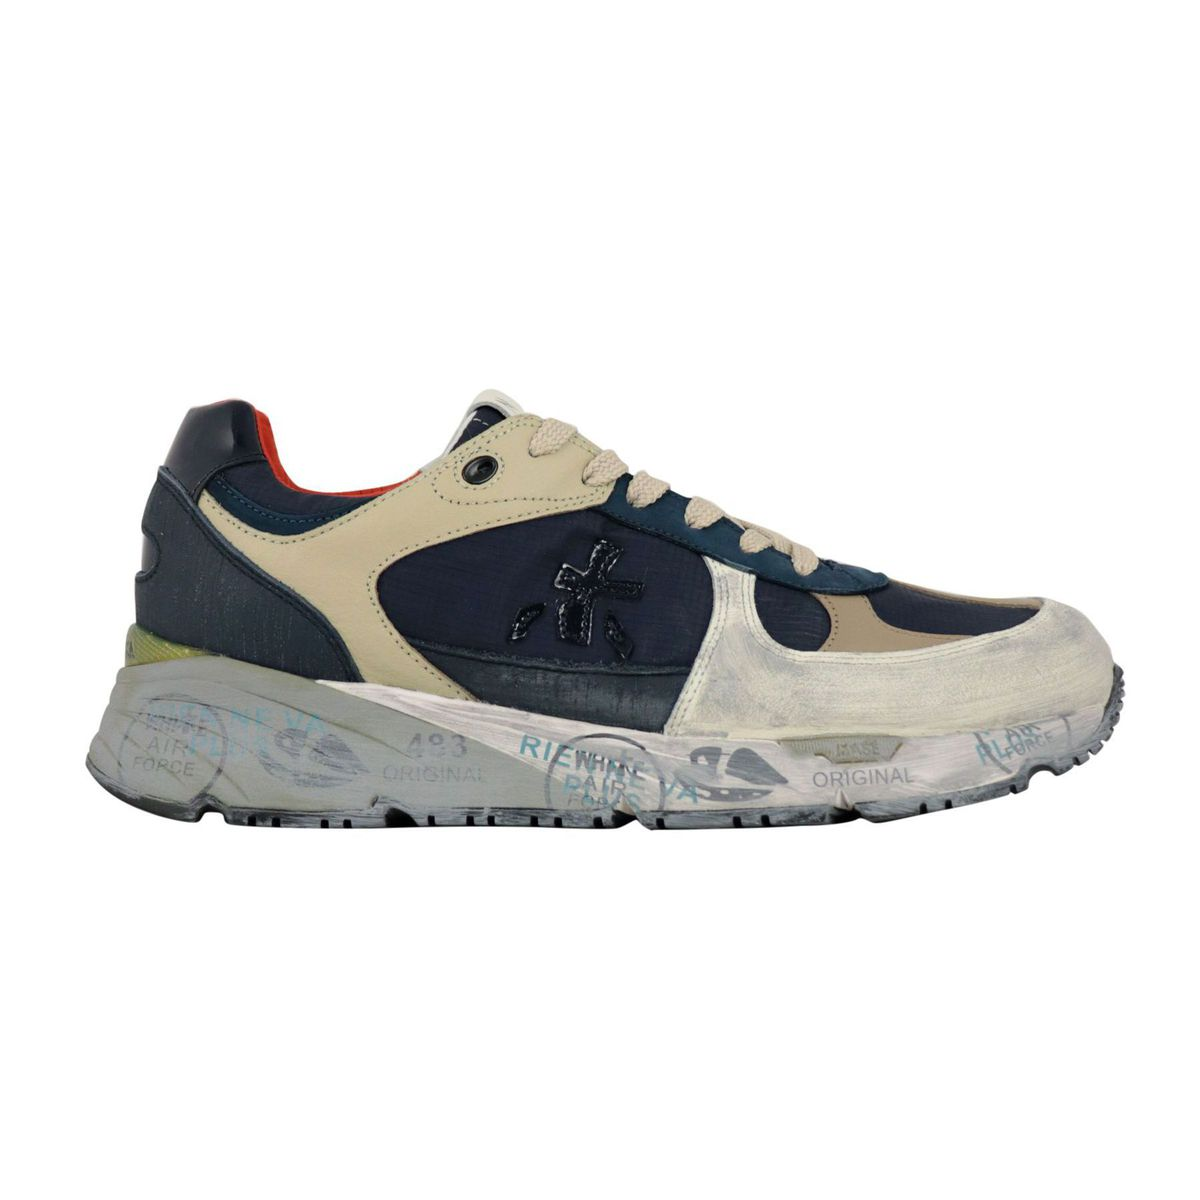 Mase sneakers in leather and technical fabric with painted effect Navy / taupe Premiata